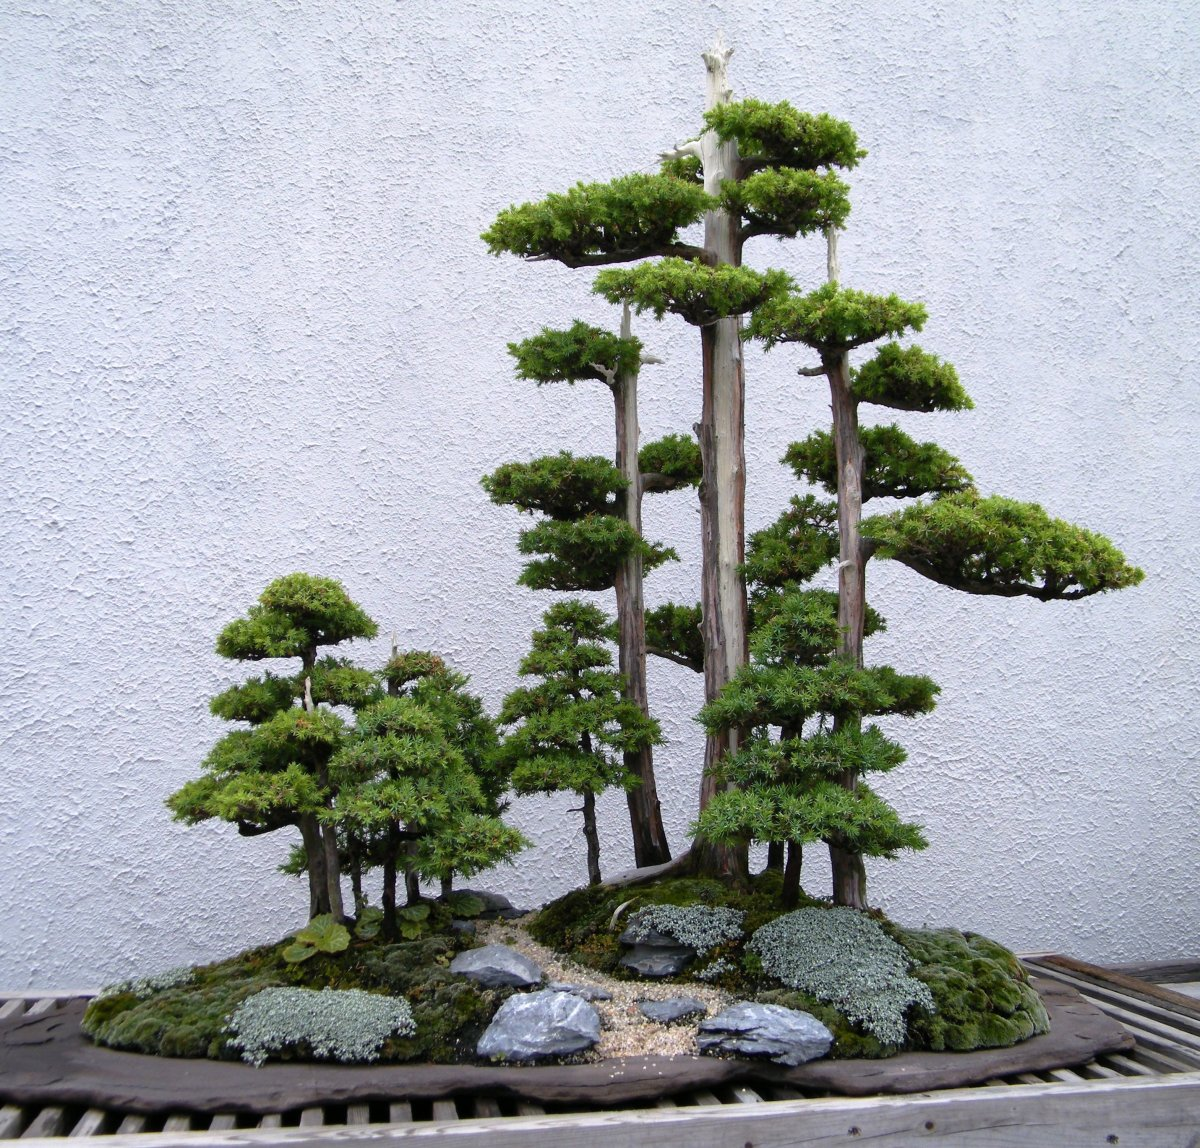 A Foemina Juniper Bonsai Tree. Bonsai's come in many different varieties, each with their own beautiful style.